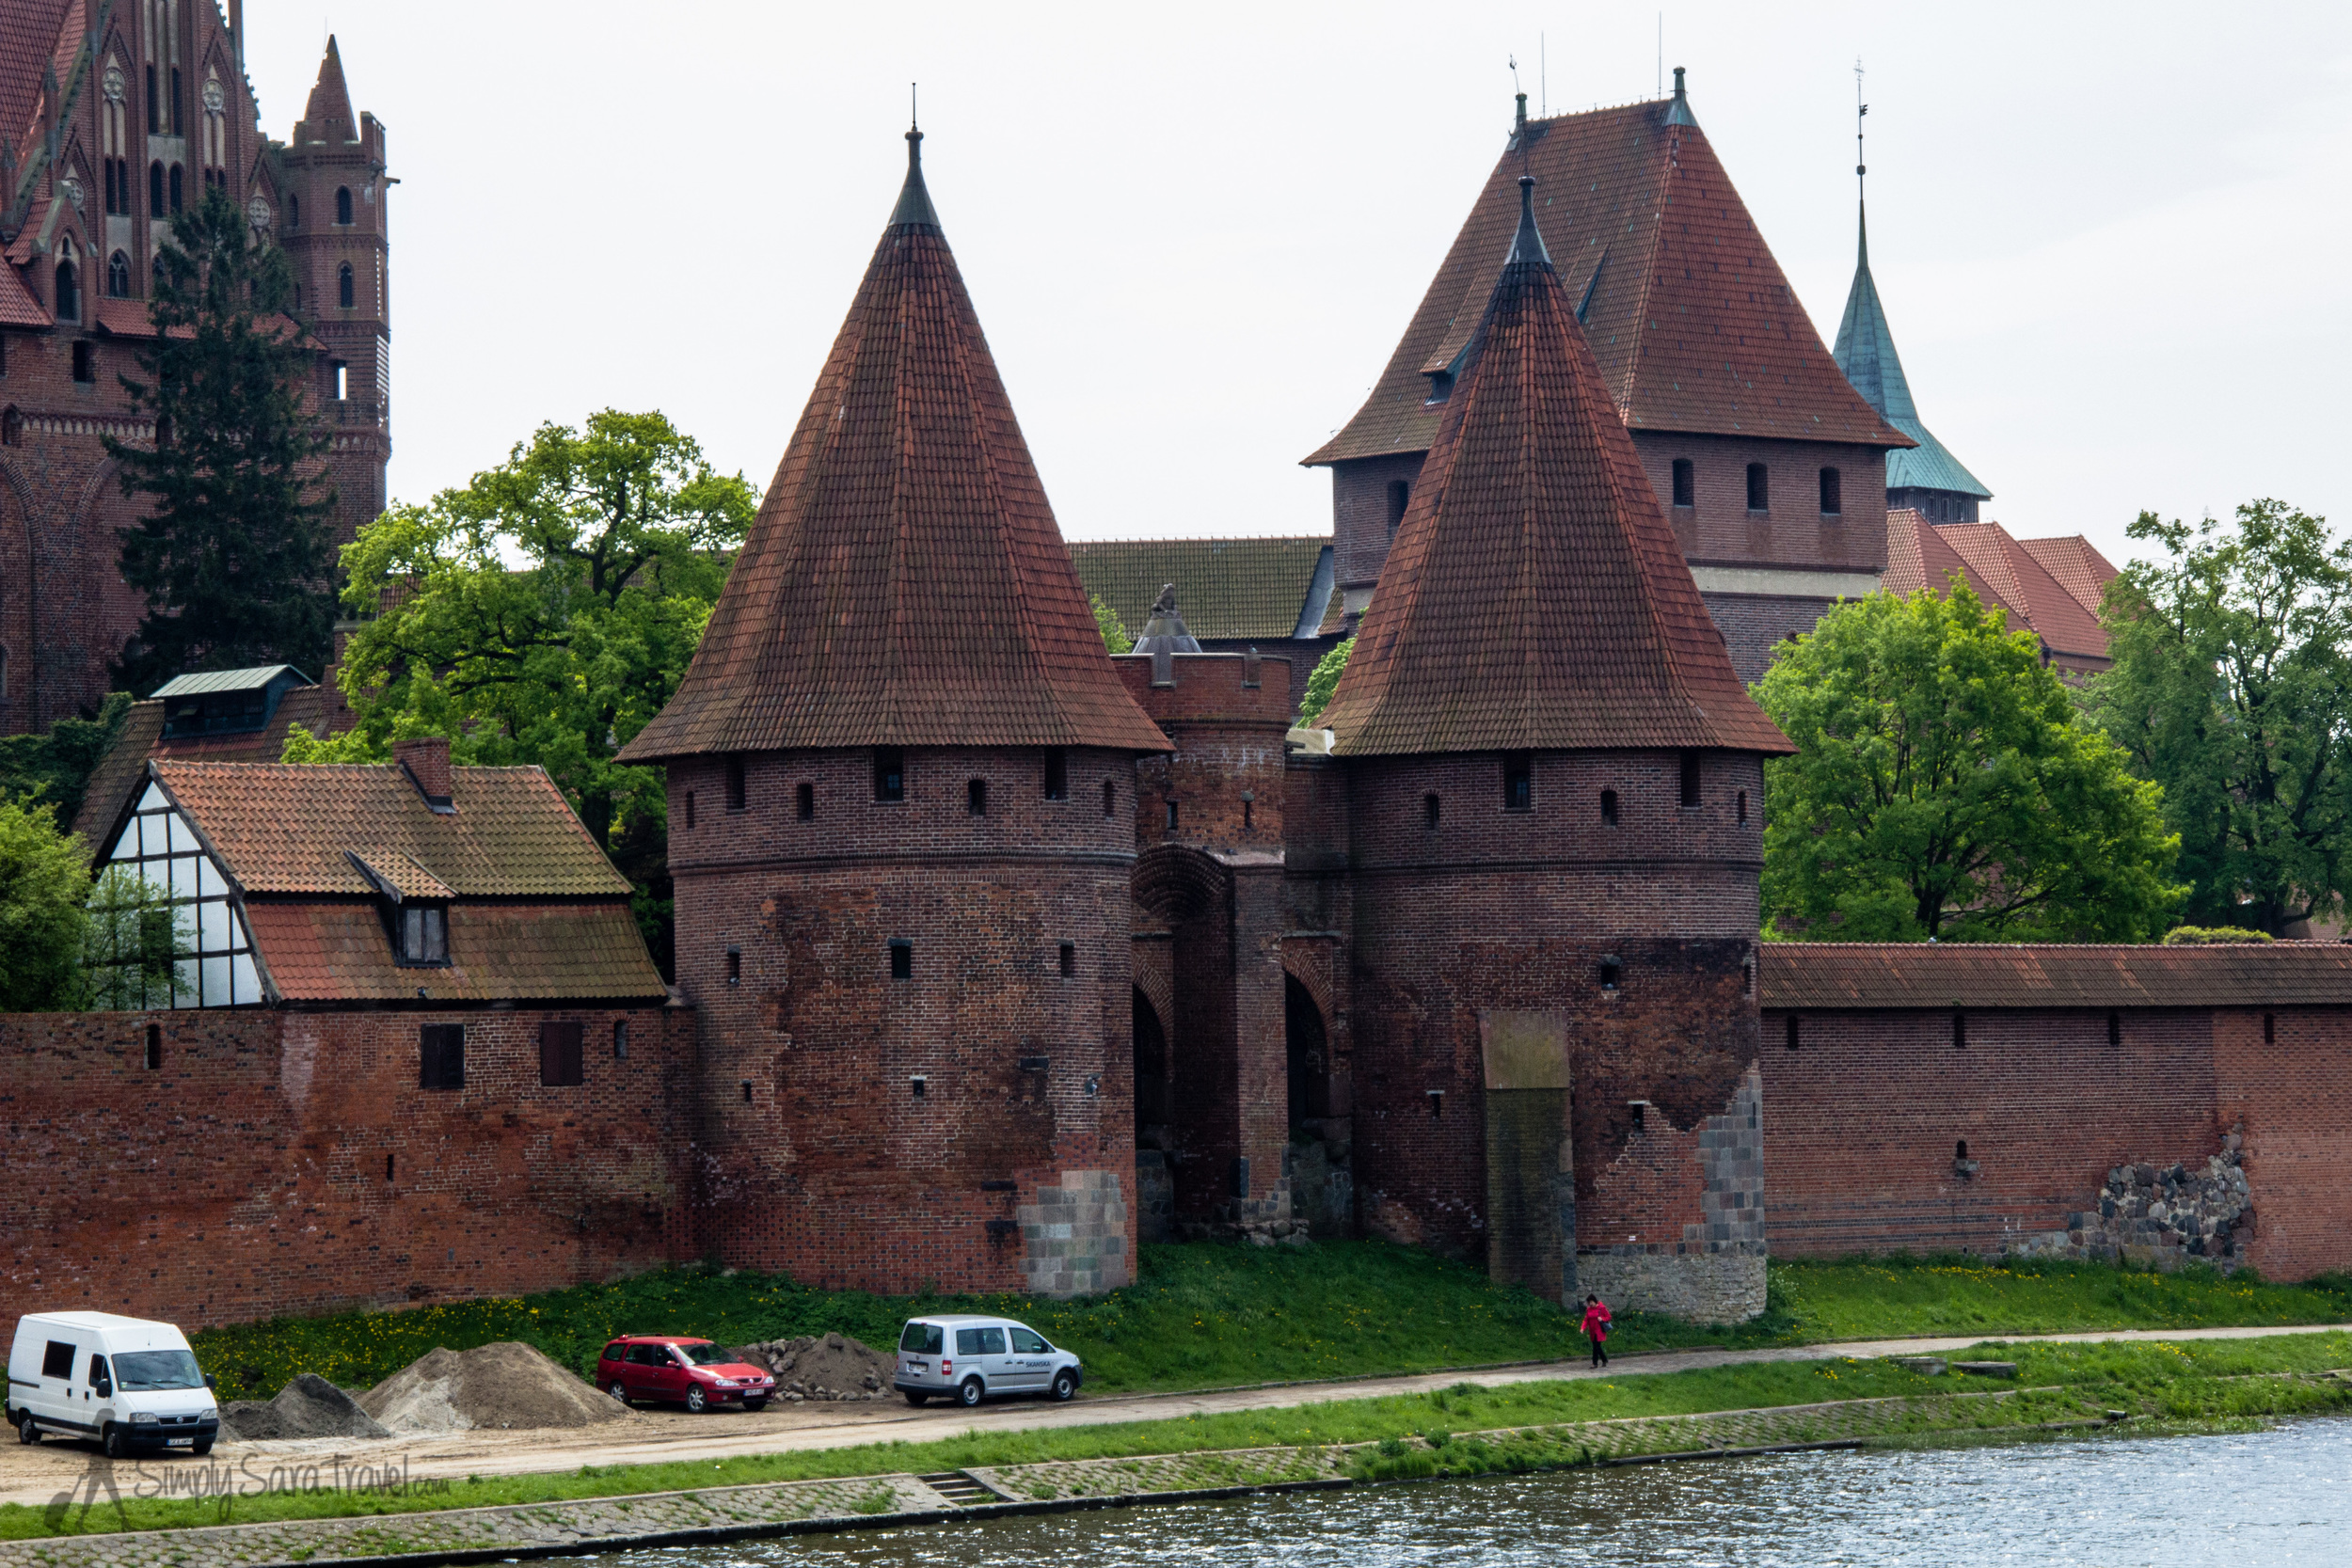 The turrets of Malbork Castle, Poland